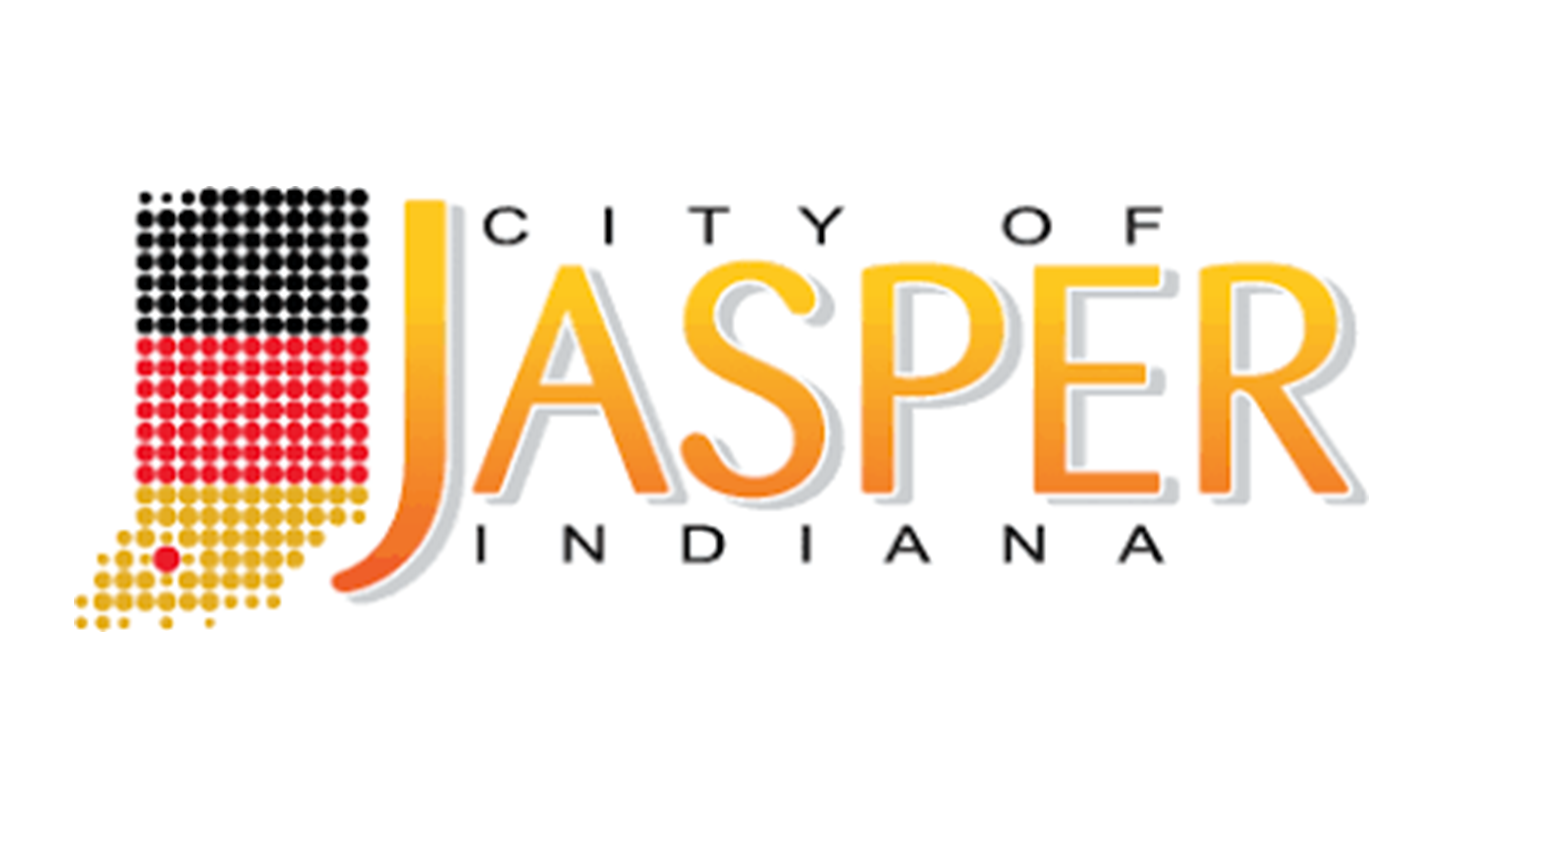 Jasper Ranked Among the Safest Cities in the State by Alarms.org